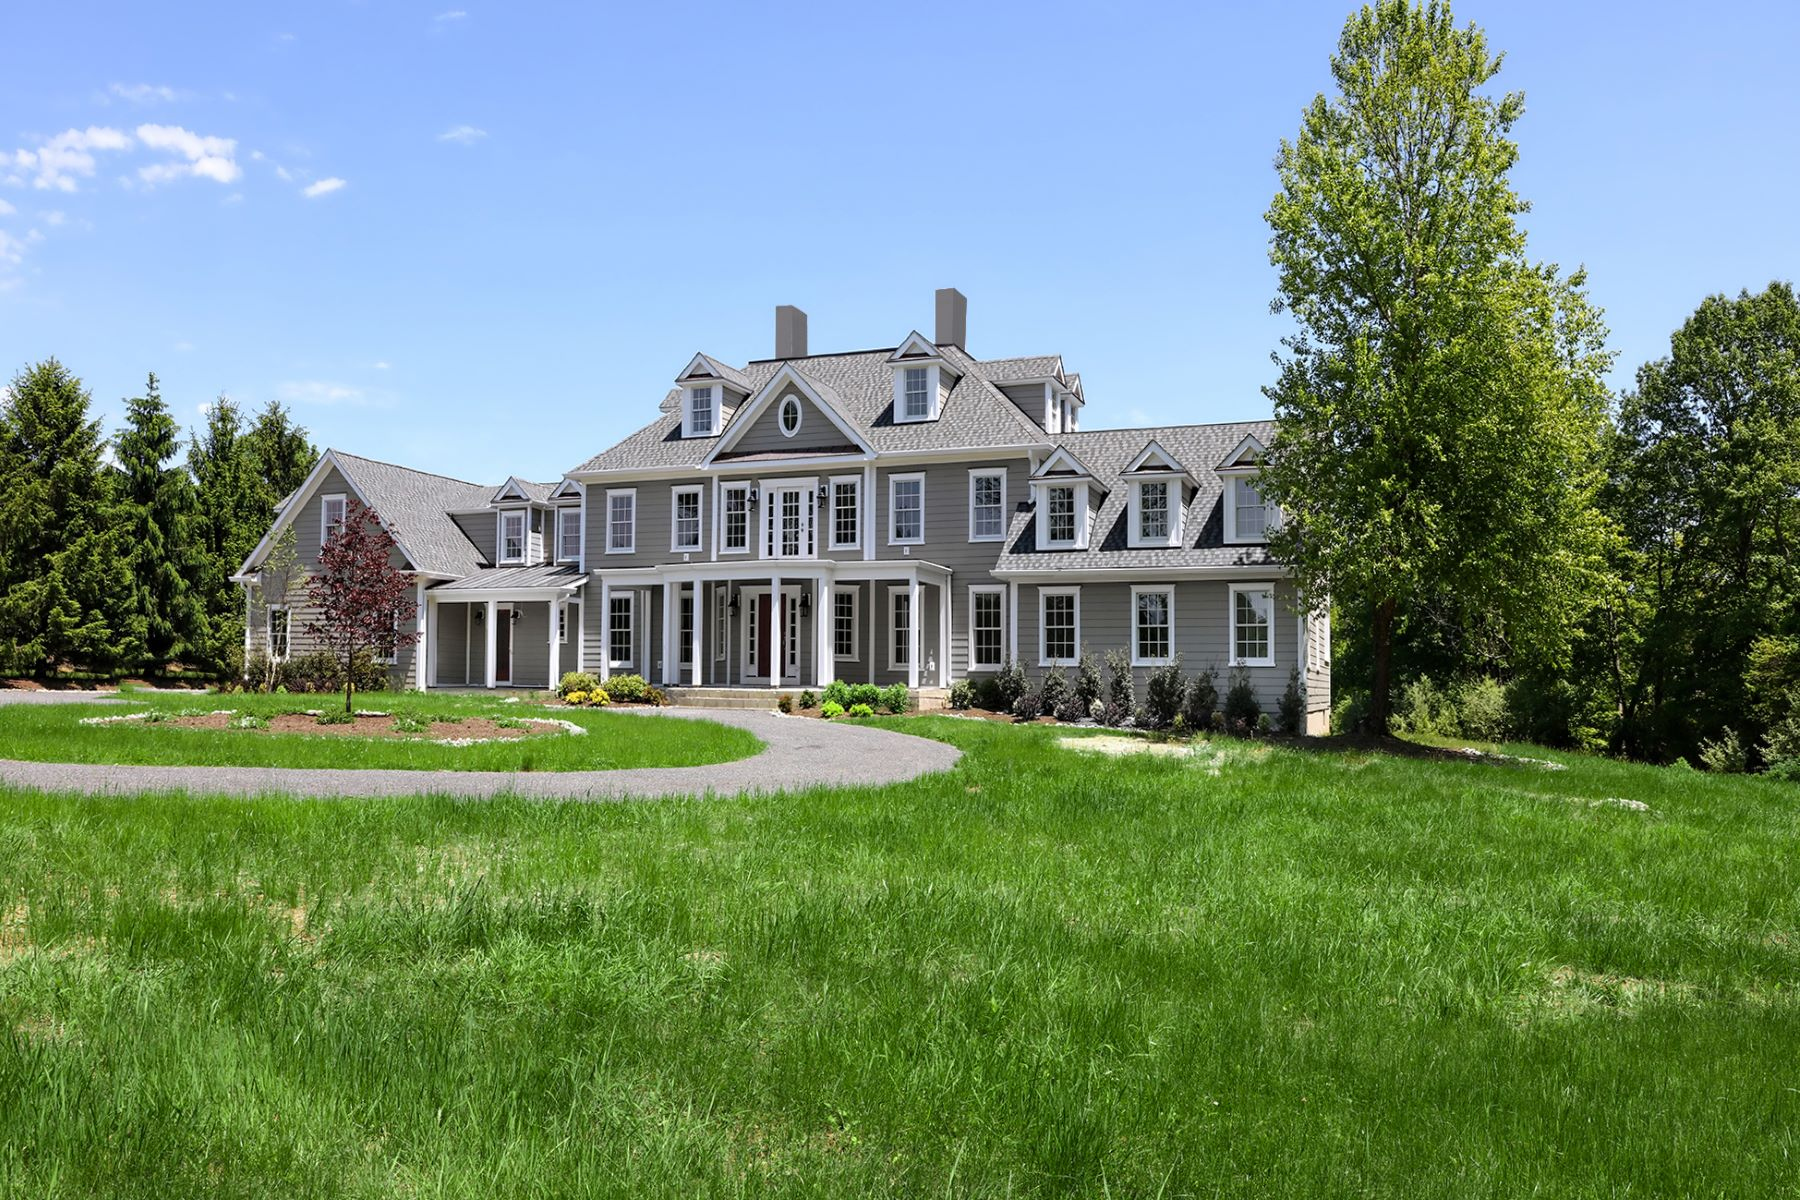 Additional photo for property listing at Every Amenity in this Spectacular Estate-Style Home 114 Federal Twist Road, Stockton, New Jersey 08559 United States